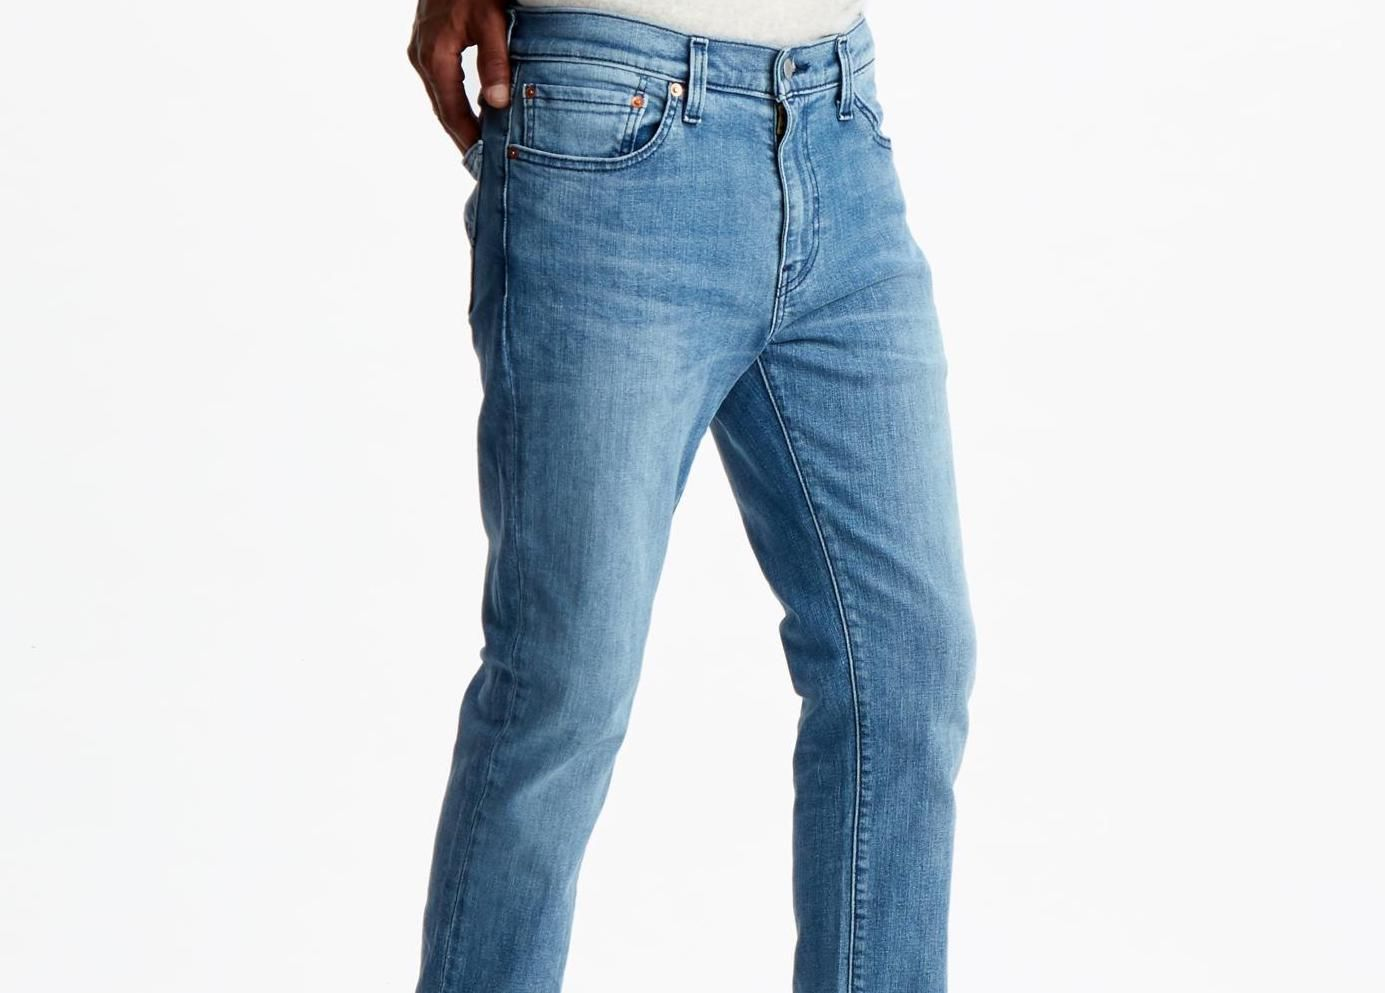 Bored of joggers? Try Levi's Flex with 20% off